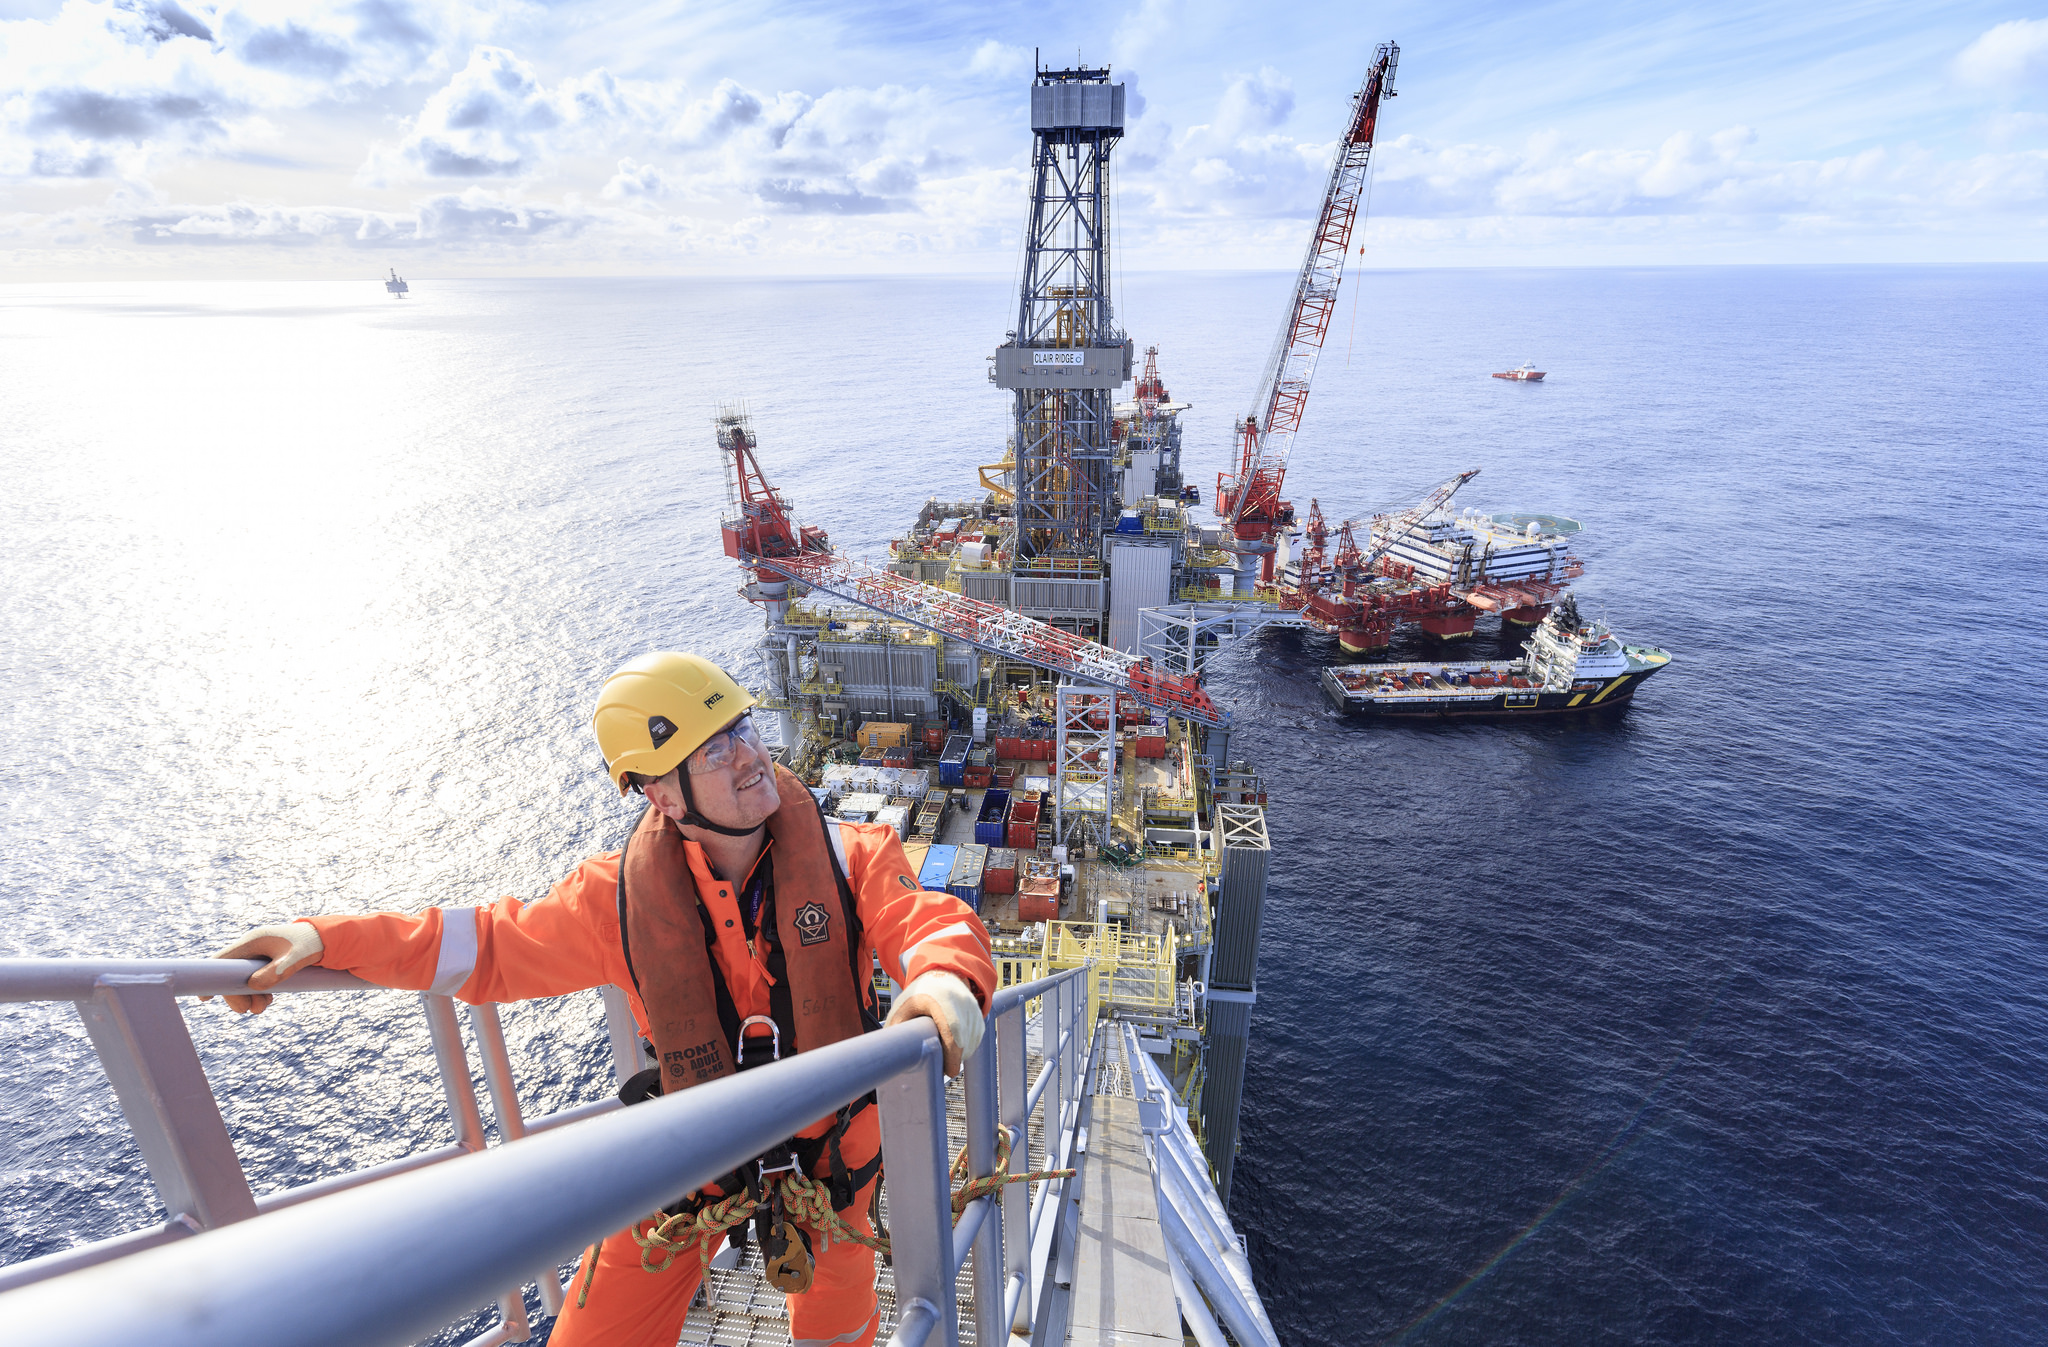 Clair Ridge is the second phase of development of the massive Clair field, 45 miles off Shetland.